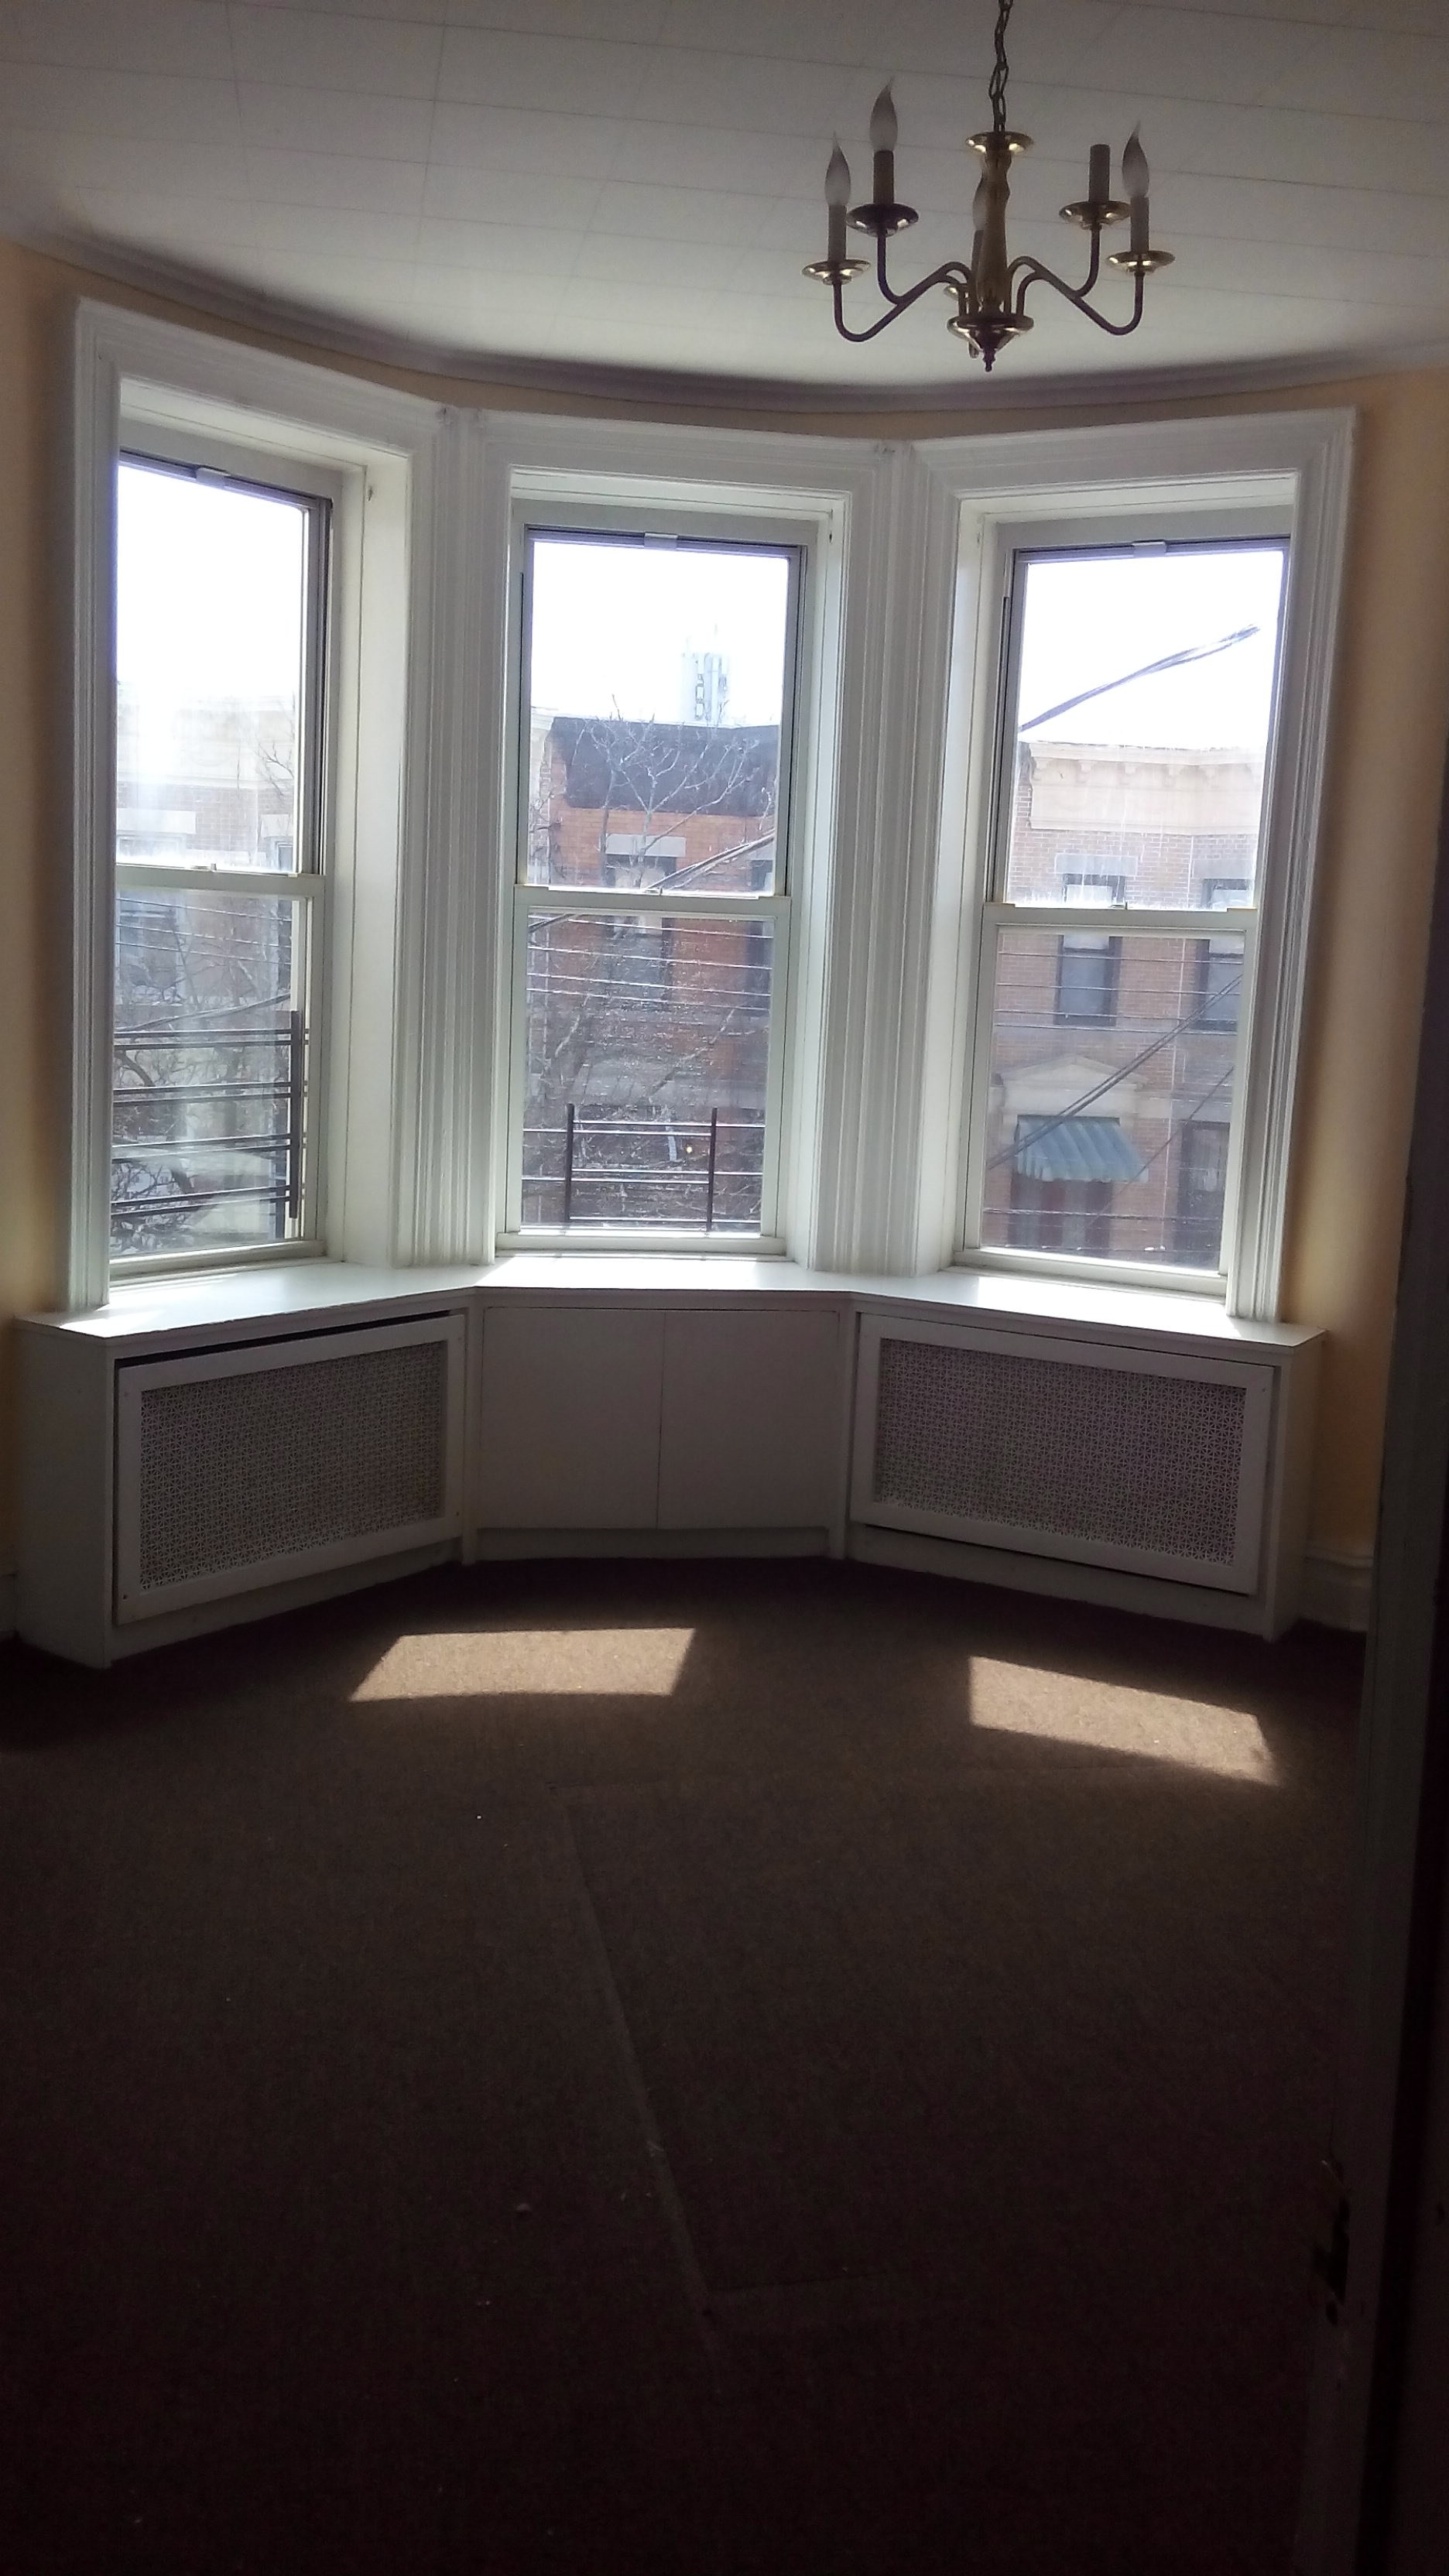 70th Avenue Near Fresh Pond Road New York Ny 11385 3 Bedroom Apartment For Rent For 1 950